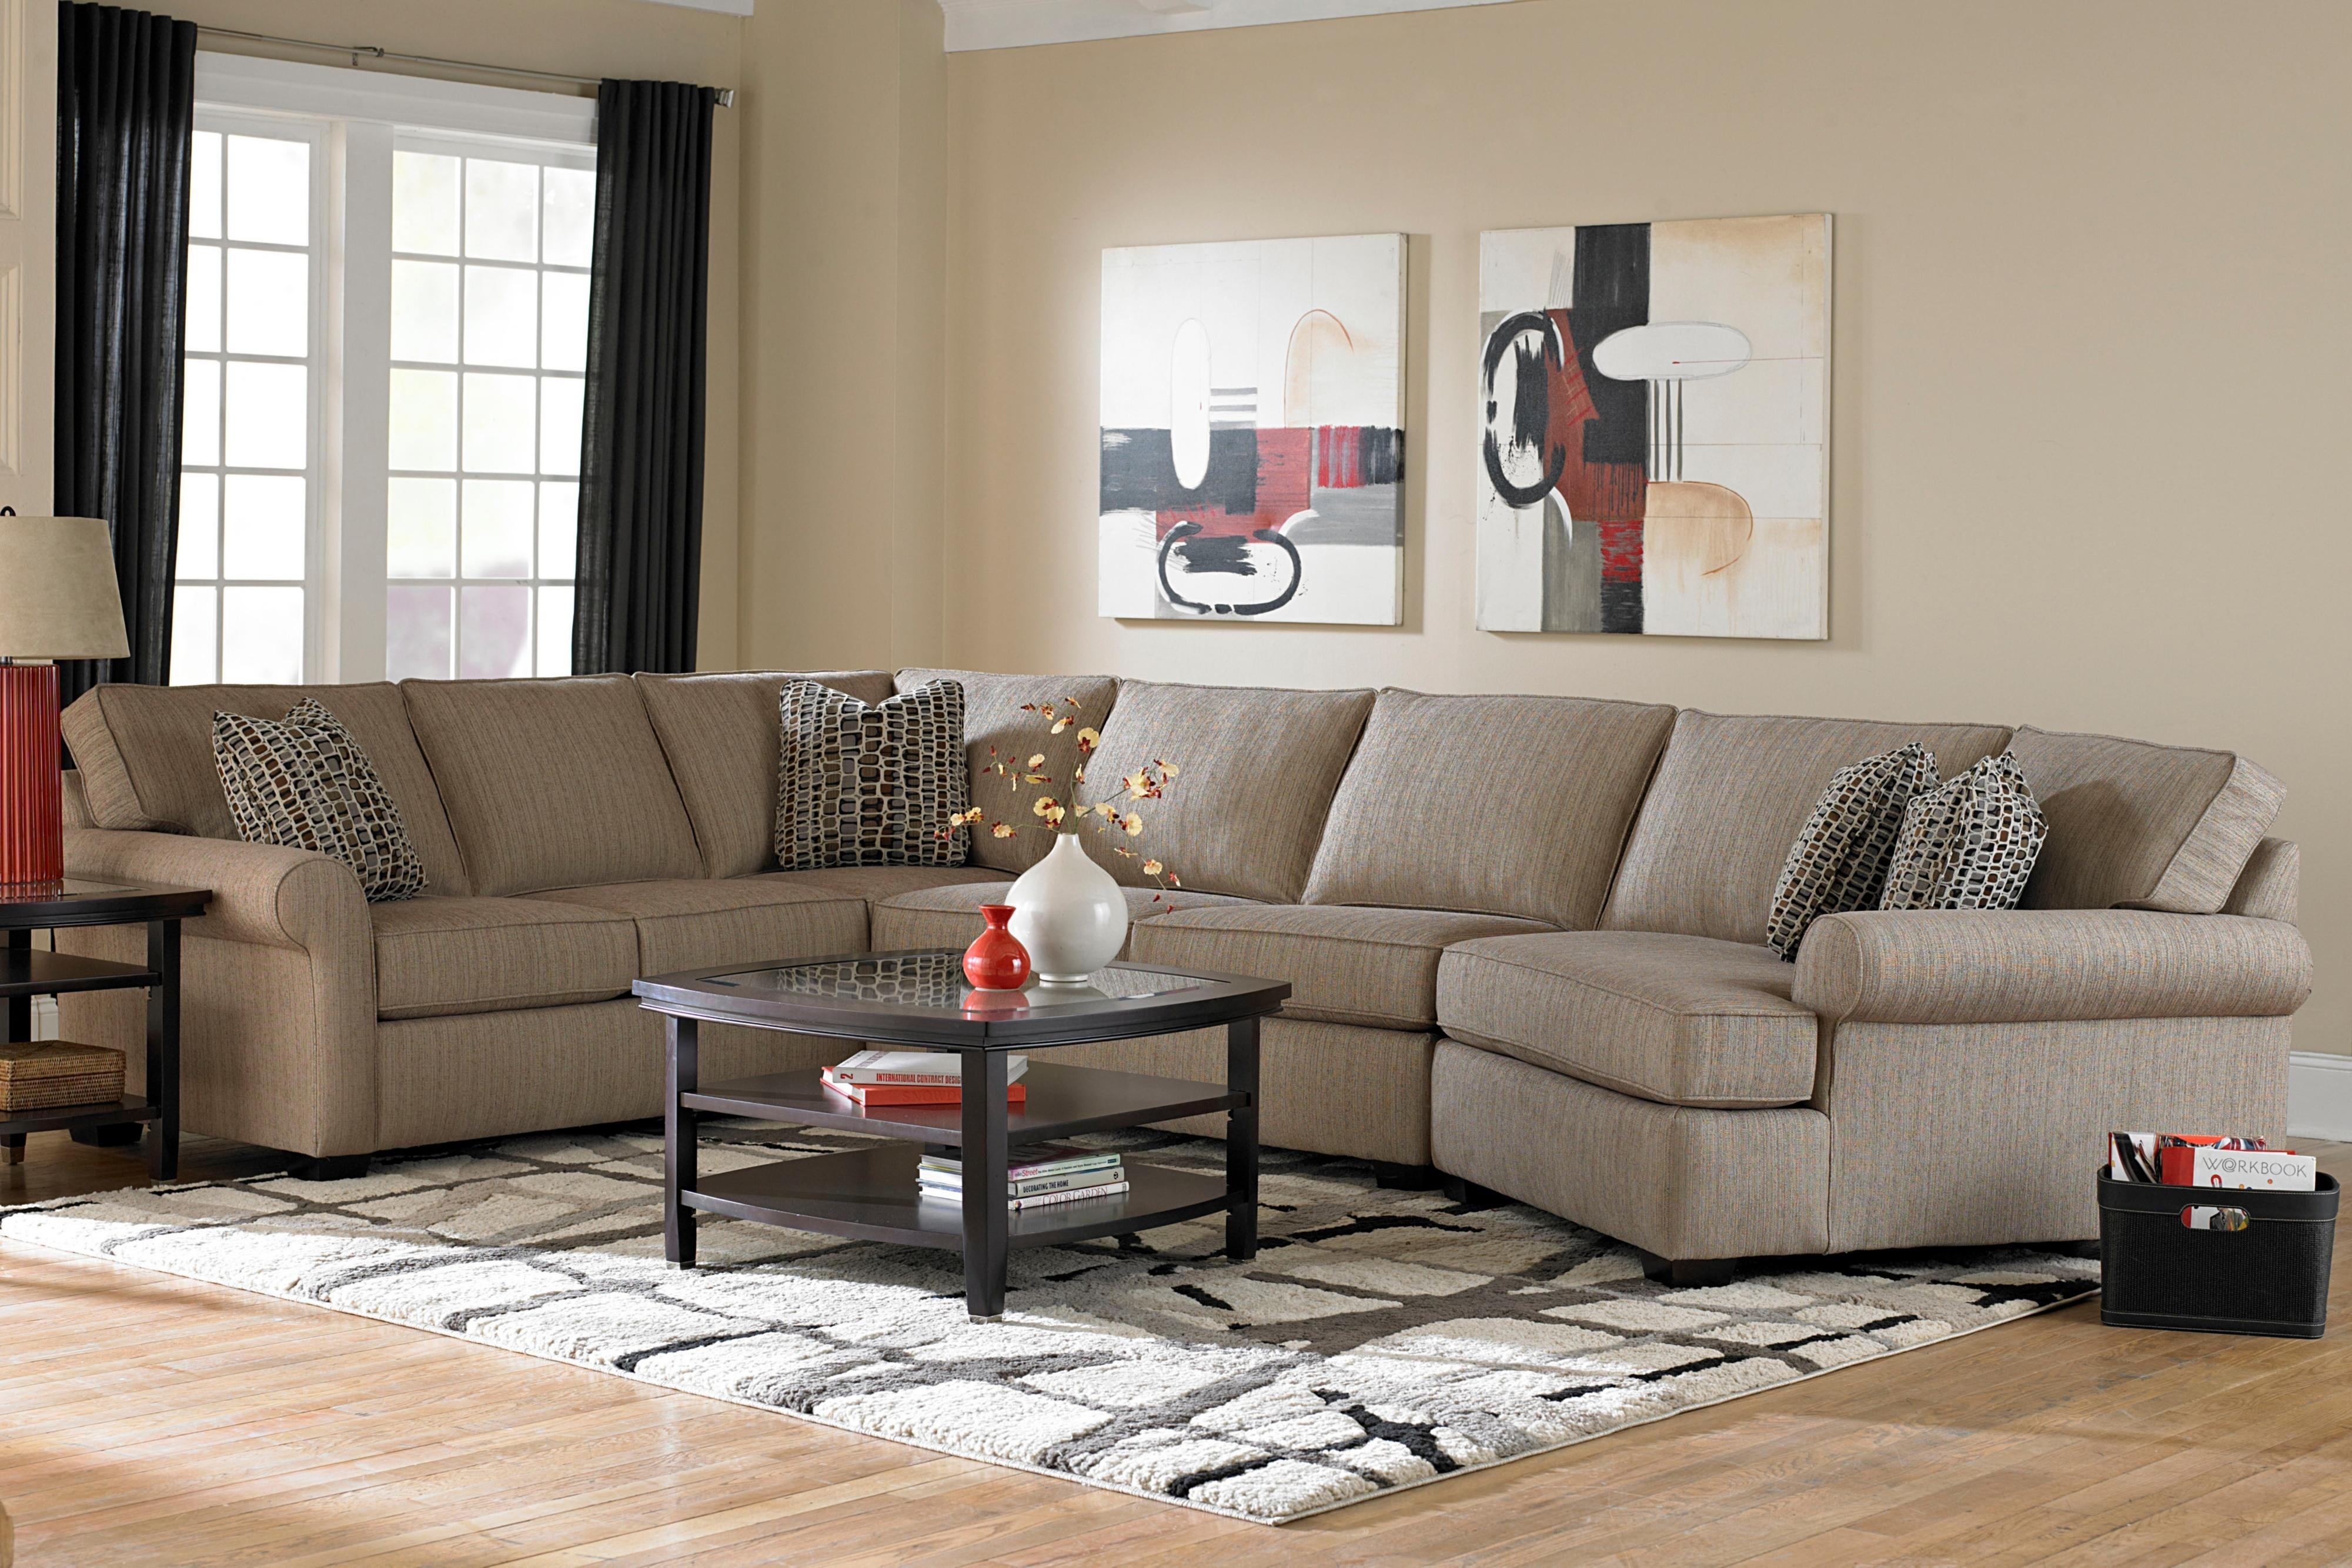 Broyhill Furniture Ethan Transitional Sectional Sofa With Right With Regard To Lancaster Pa Sectional Sofas (View 3 of 10)